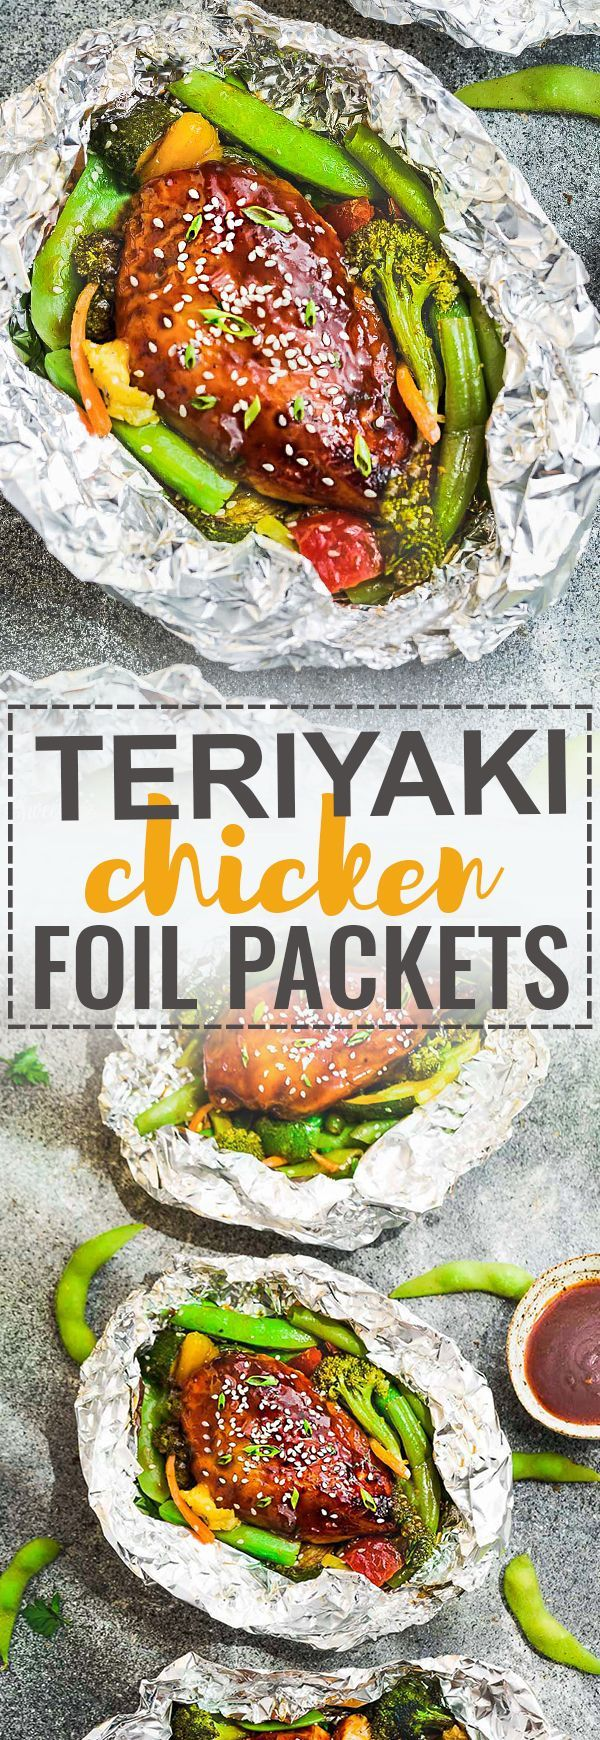 This Teriyaki Chicken Foil Packets with Vegetables is the perfect easy campfire or weekly dinner recipe for summer.